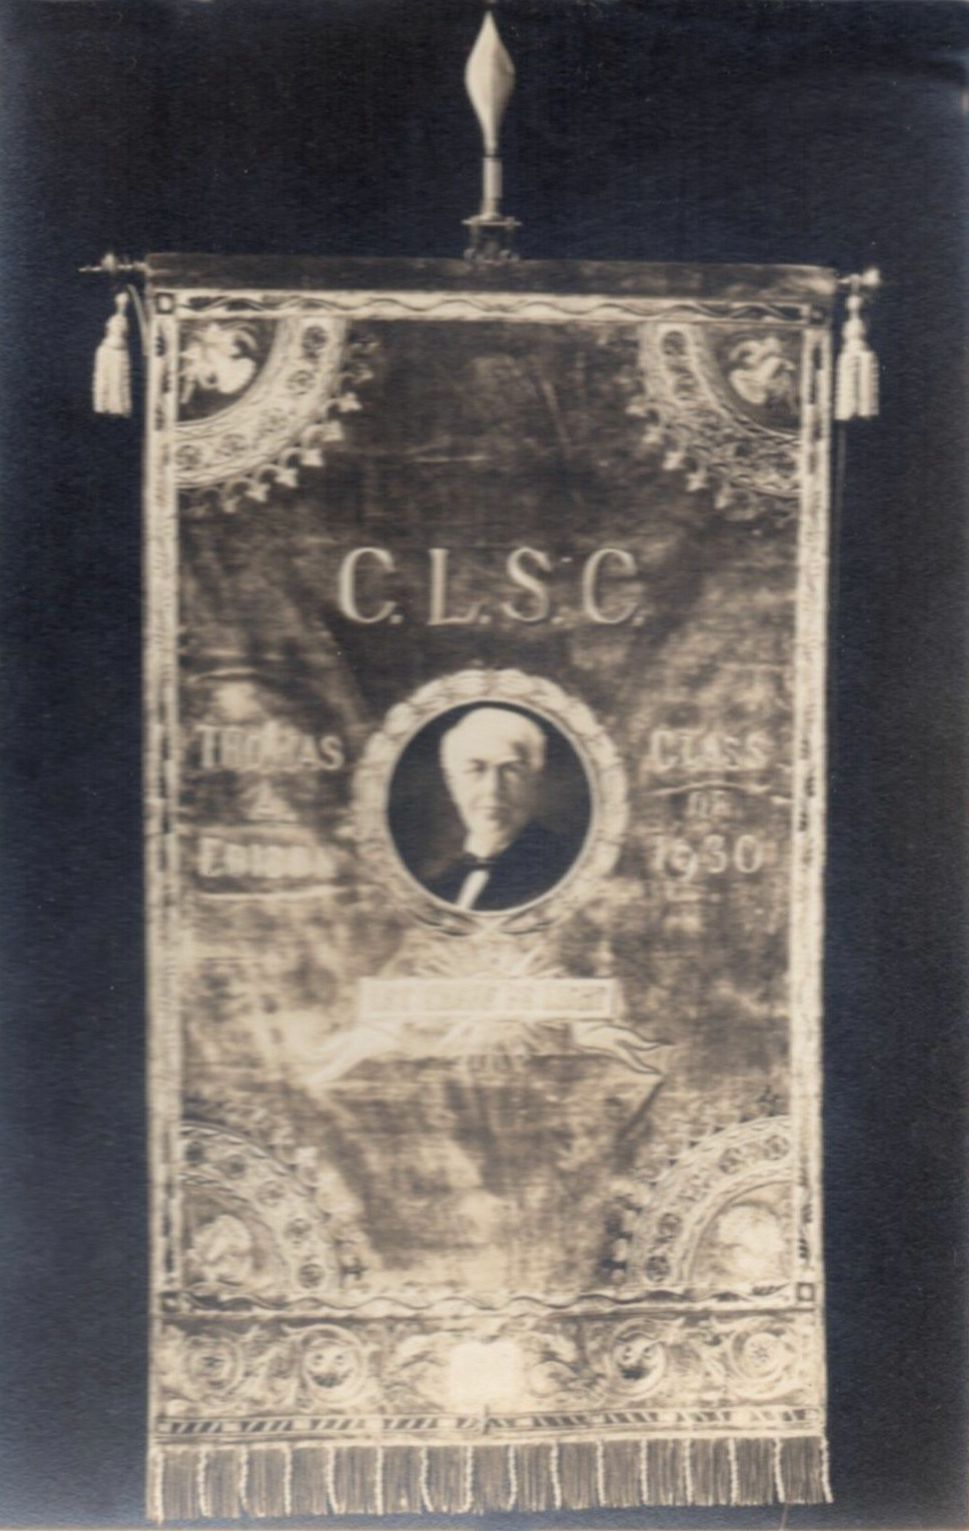 C.L.S.C. banner for the Edison Class of 1930.